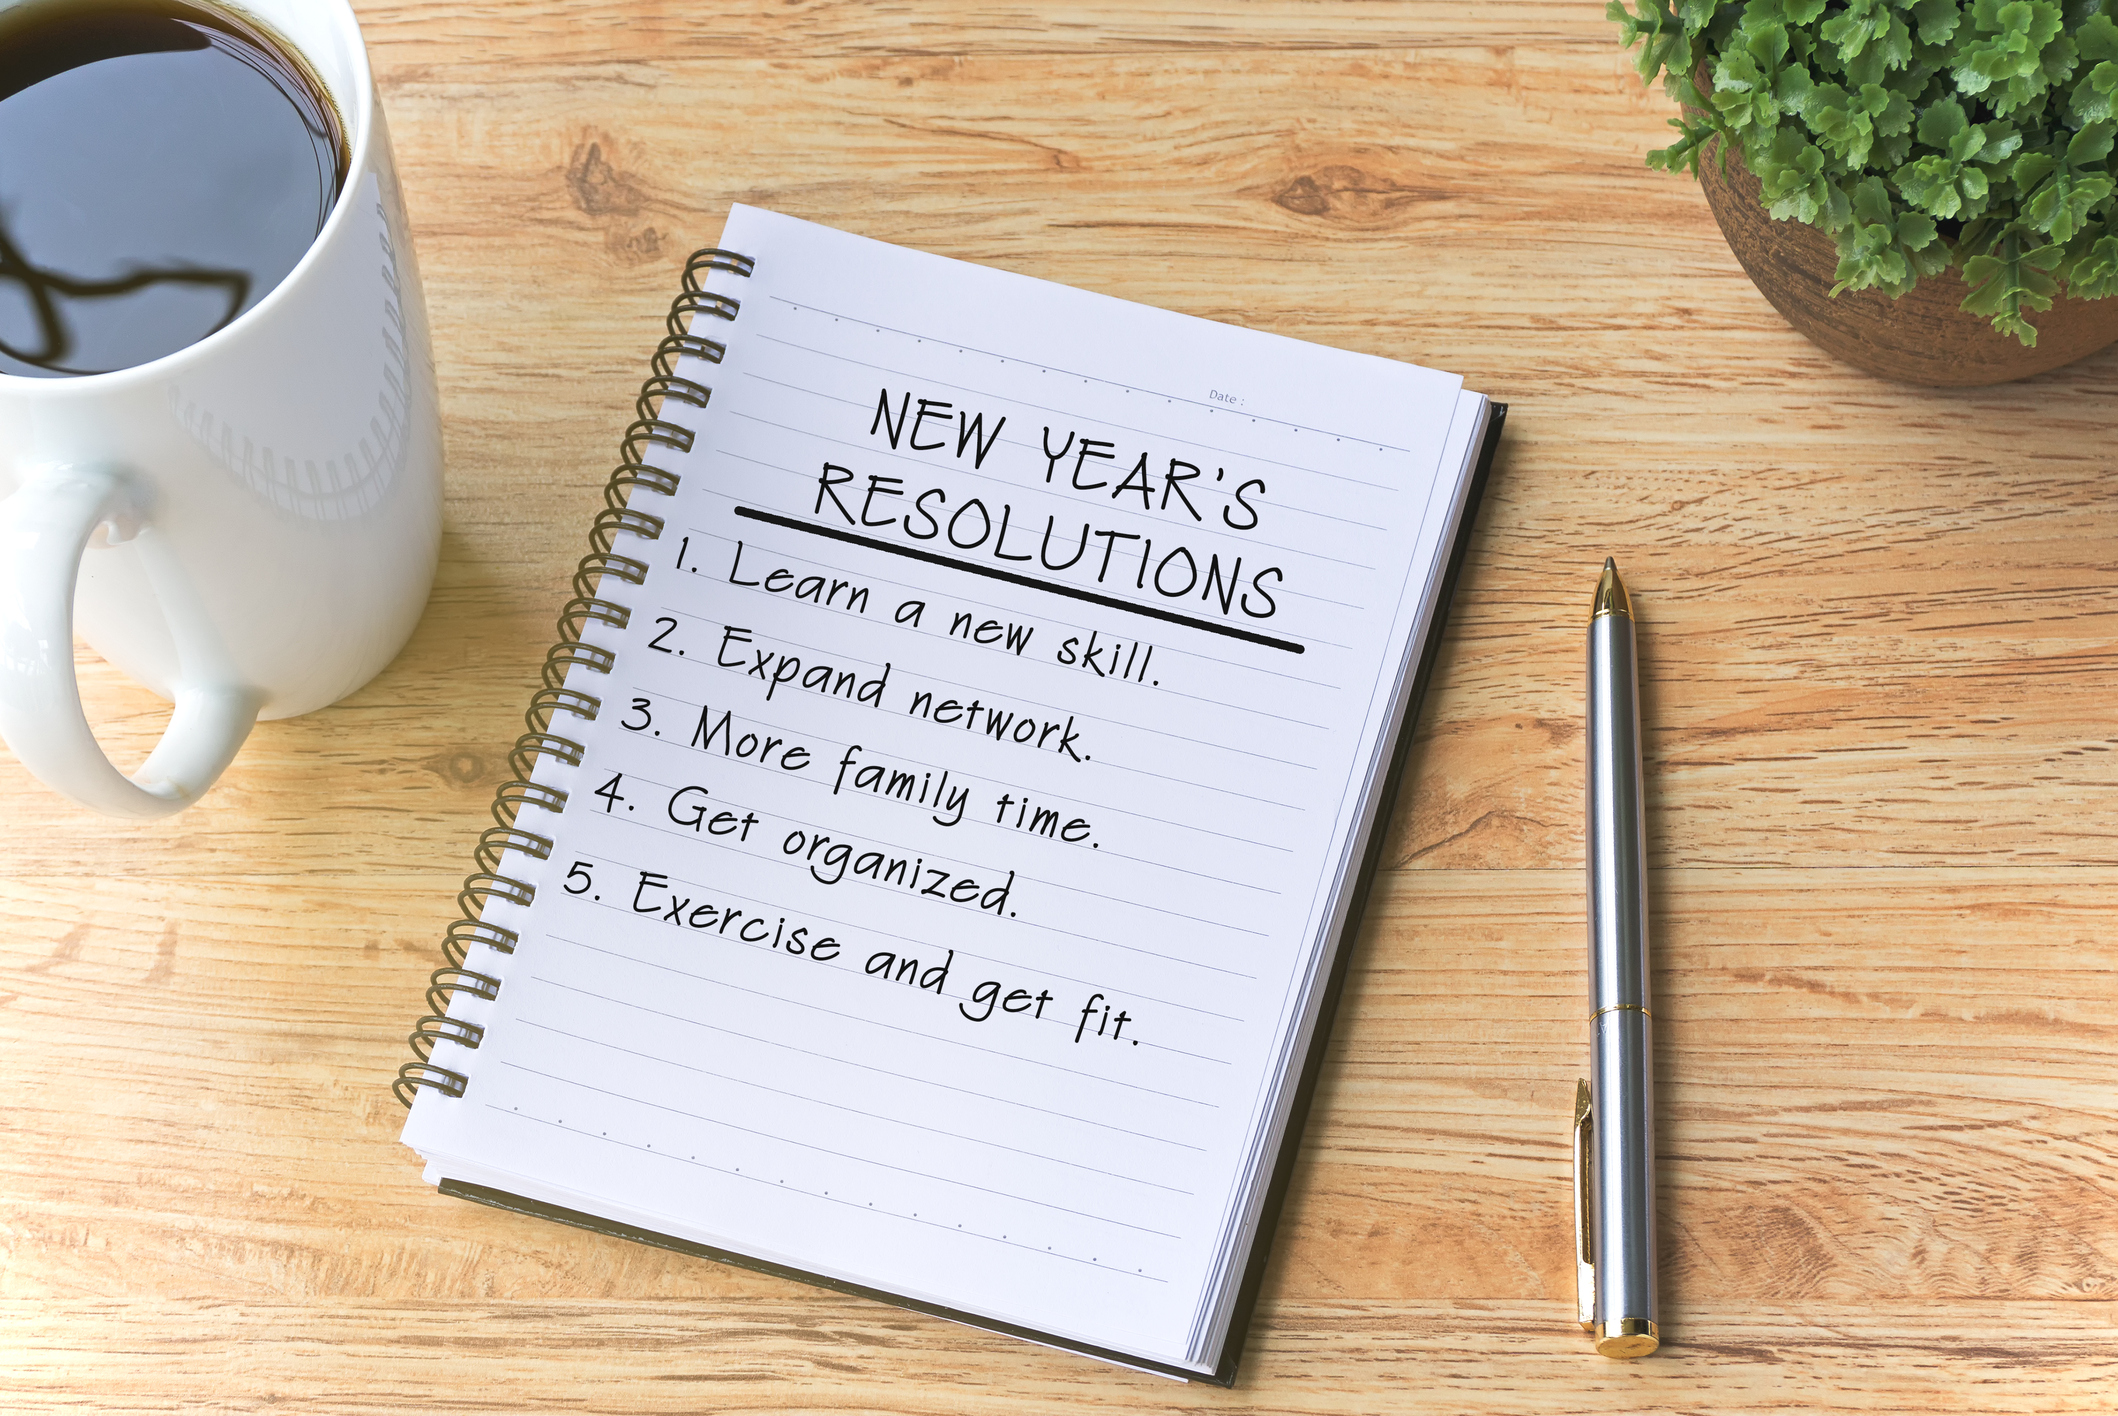 New Year's Resolutions that Make Aging More Enjoyable ...